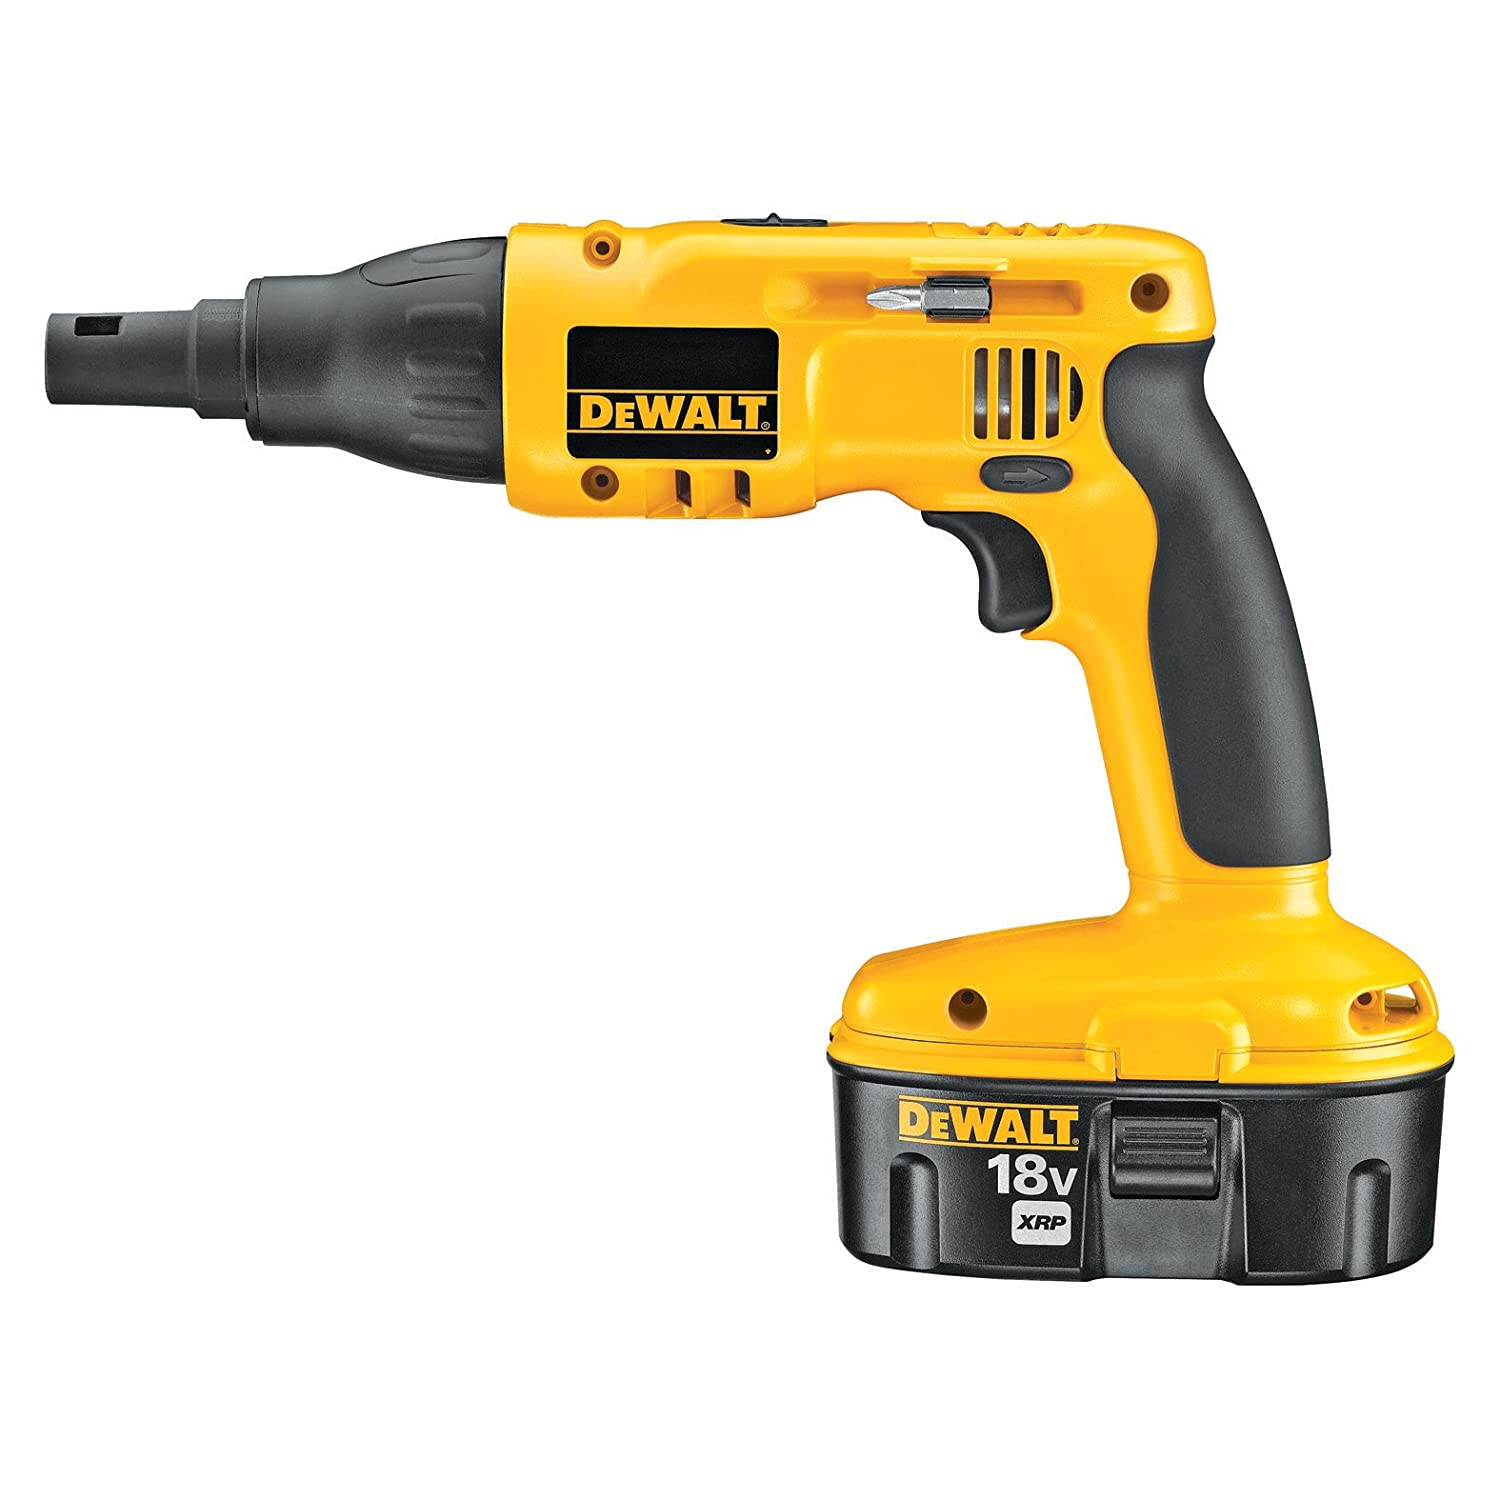 dewalt 18v tools. amazon.com: dewalt dc520ka 18-volt nicd cordless drywall/deck screwdriver kit: industrial \u0026 scientific dewalt 18v tools